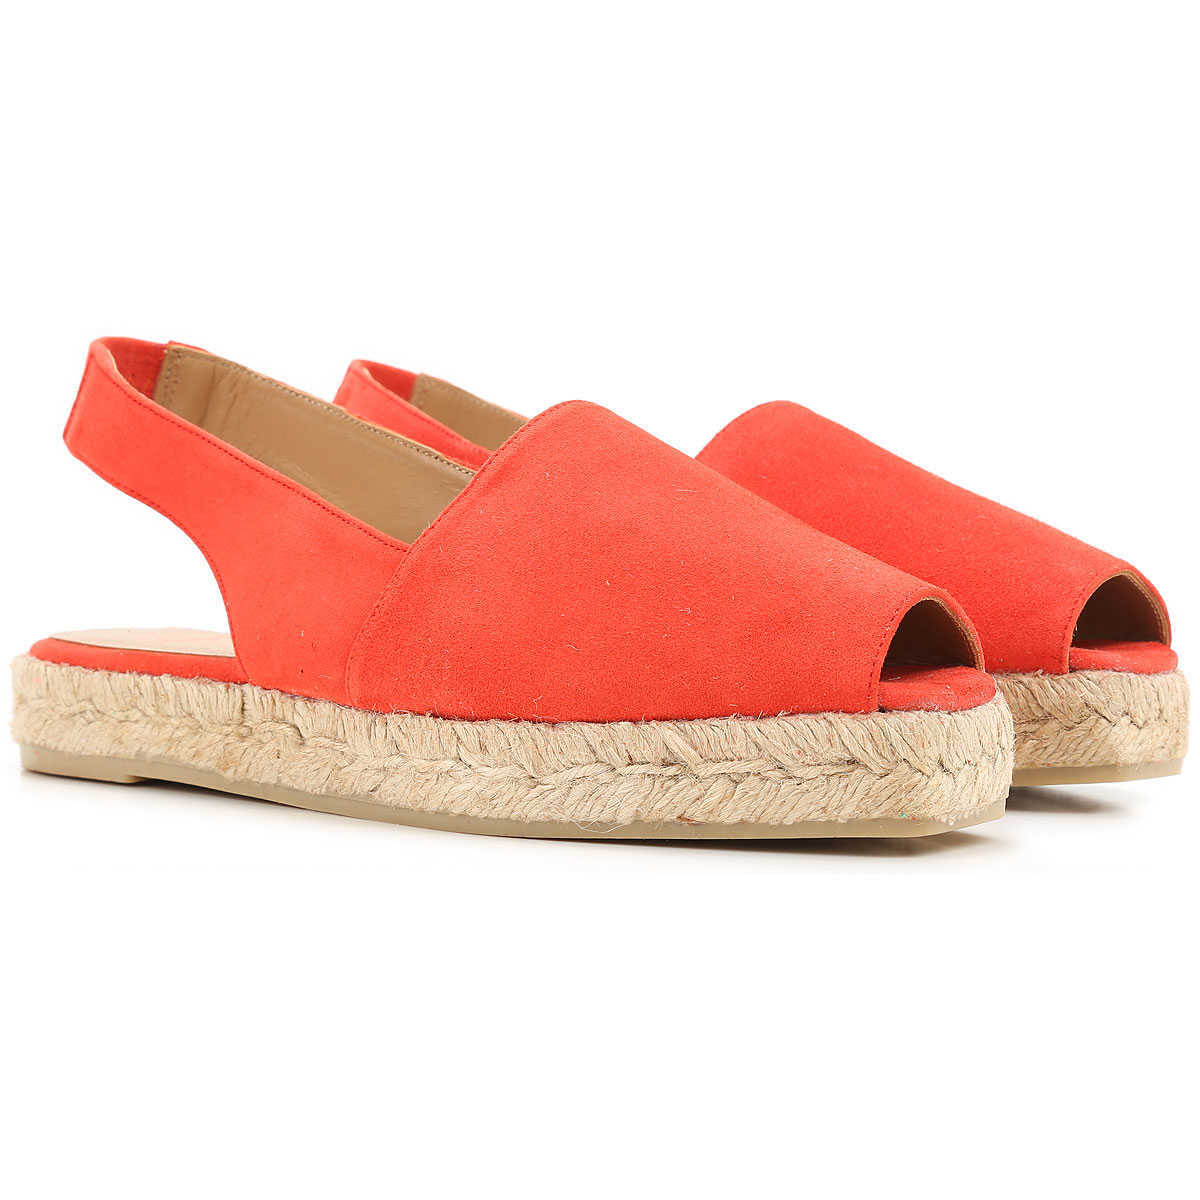 Castaner Wedges for Women On Sale in Outlet Red - GOOFASH